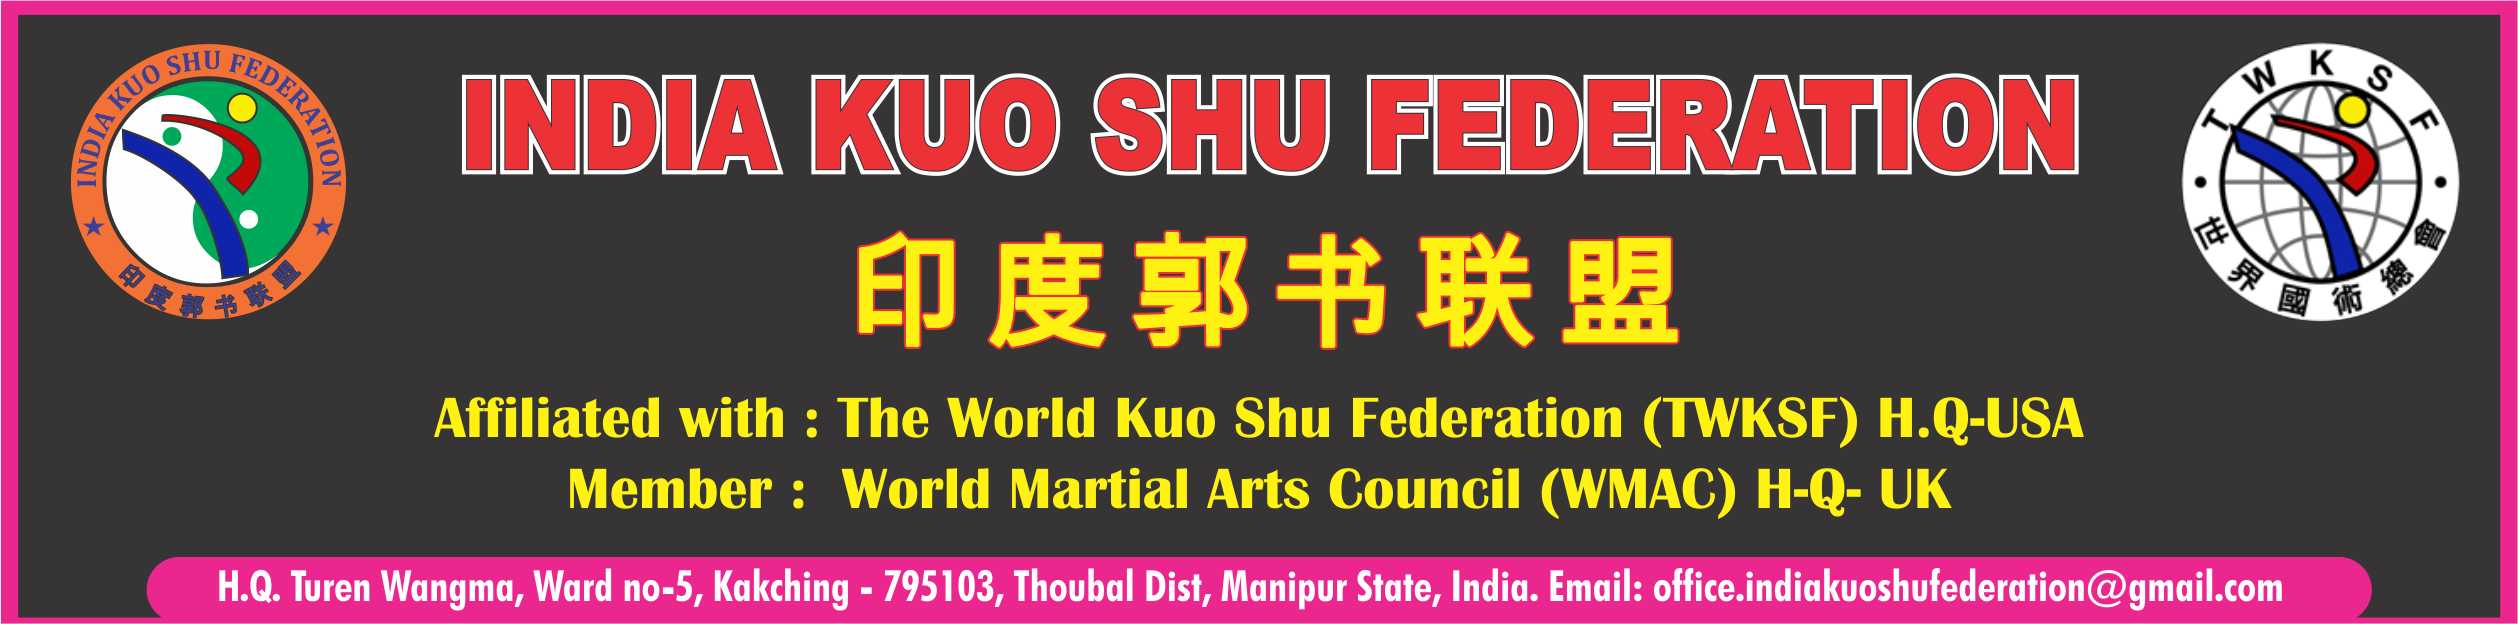 India Kuo Shu Federation